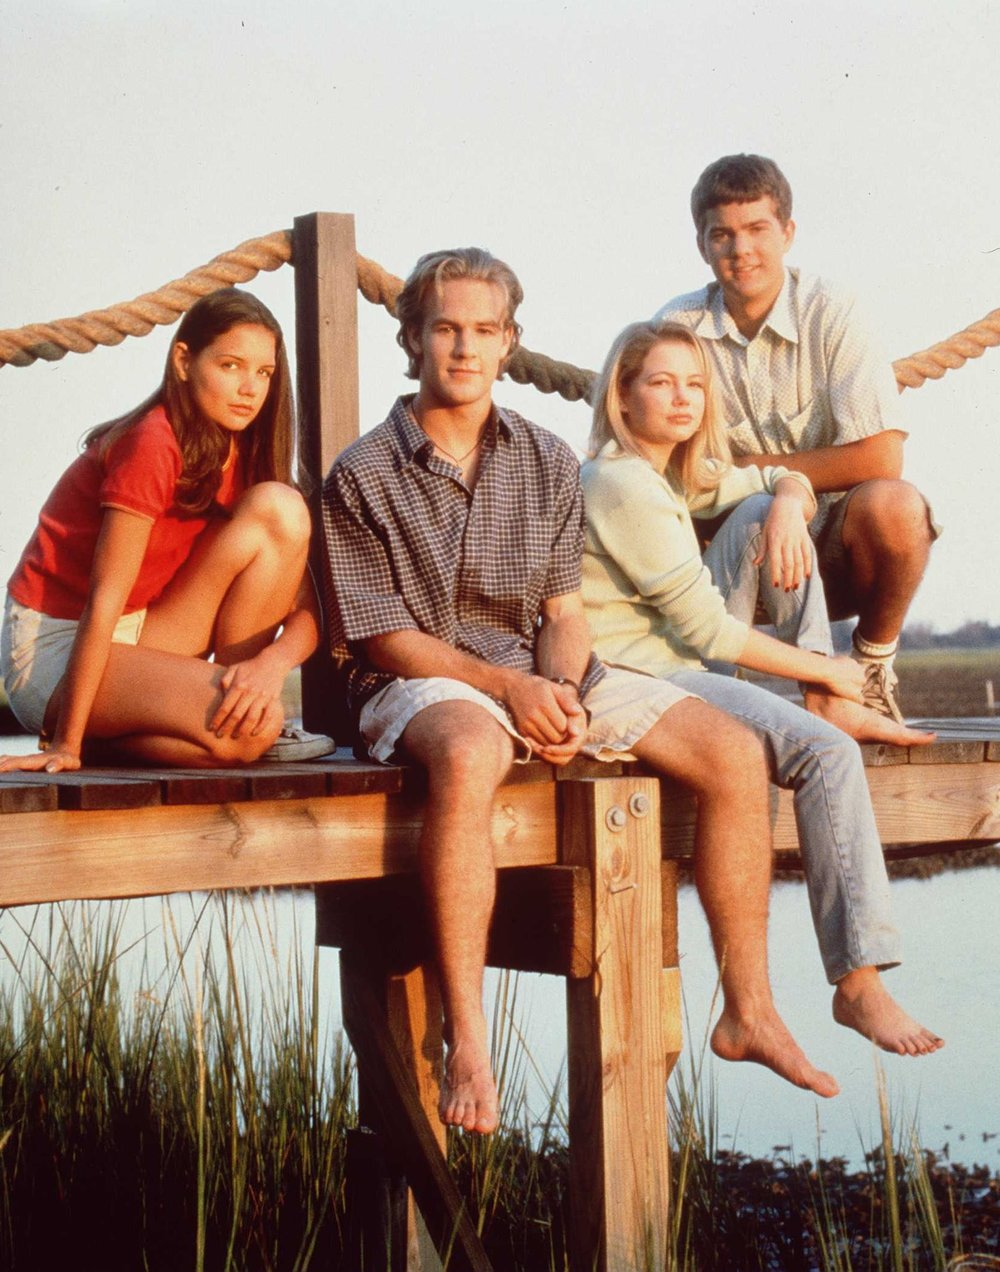 for-the-first-time-in-15-years-the-cast-of-dawsons-creek-reunite-for-the-20th-anniversary11